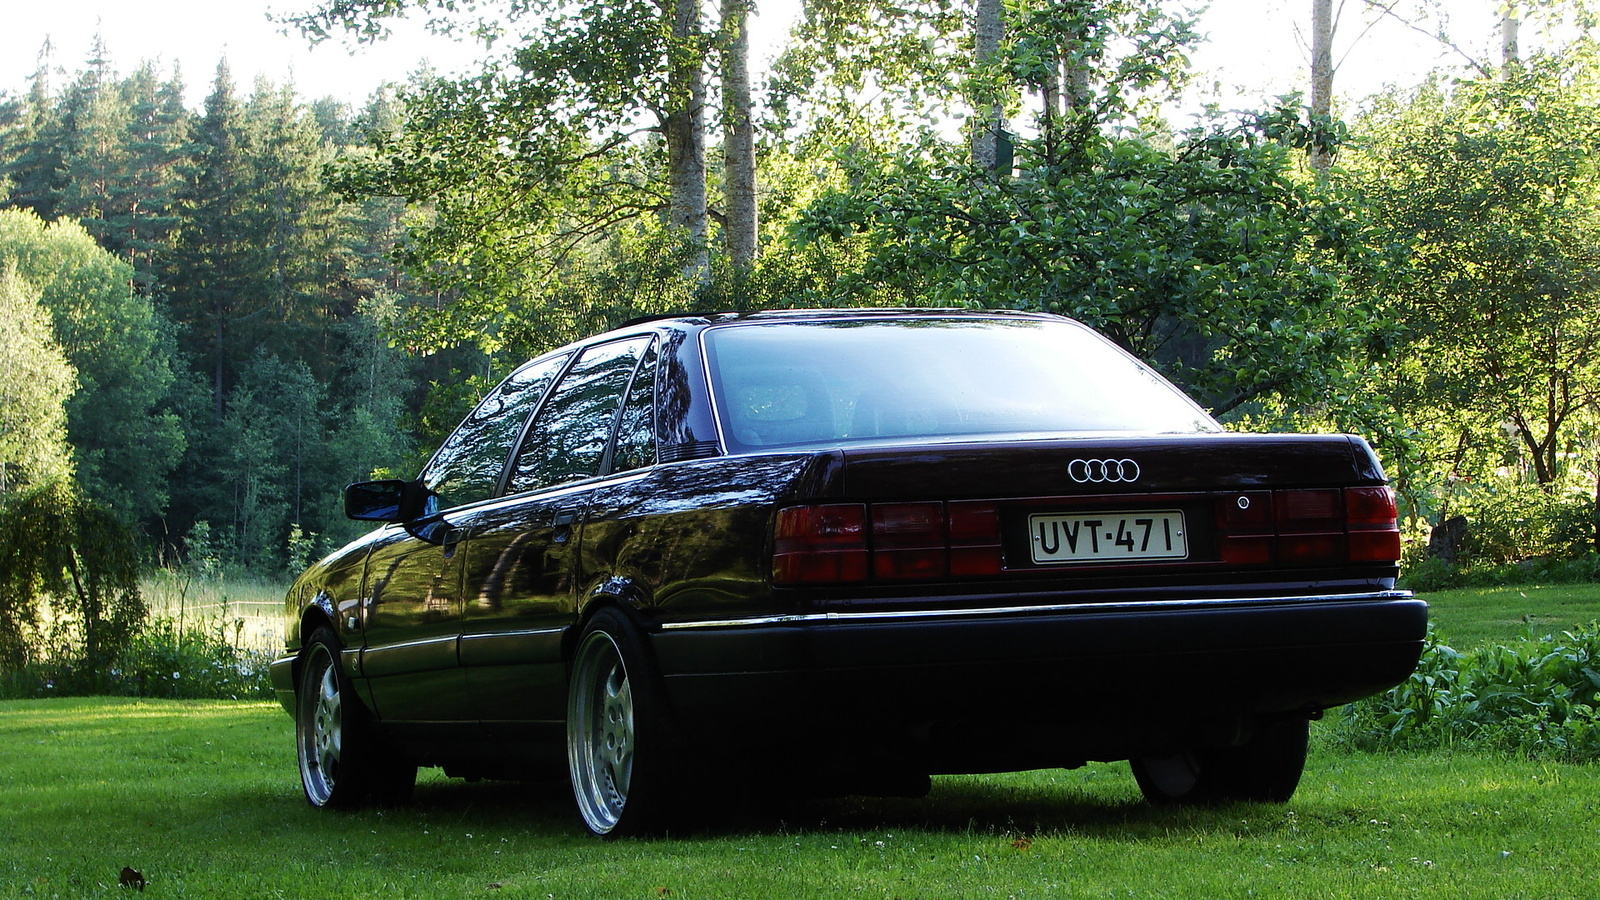 1990 Audi 200 Turbo Quattro